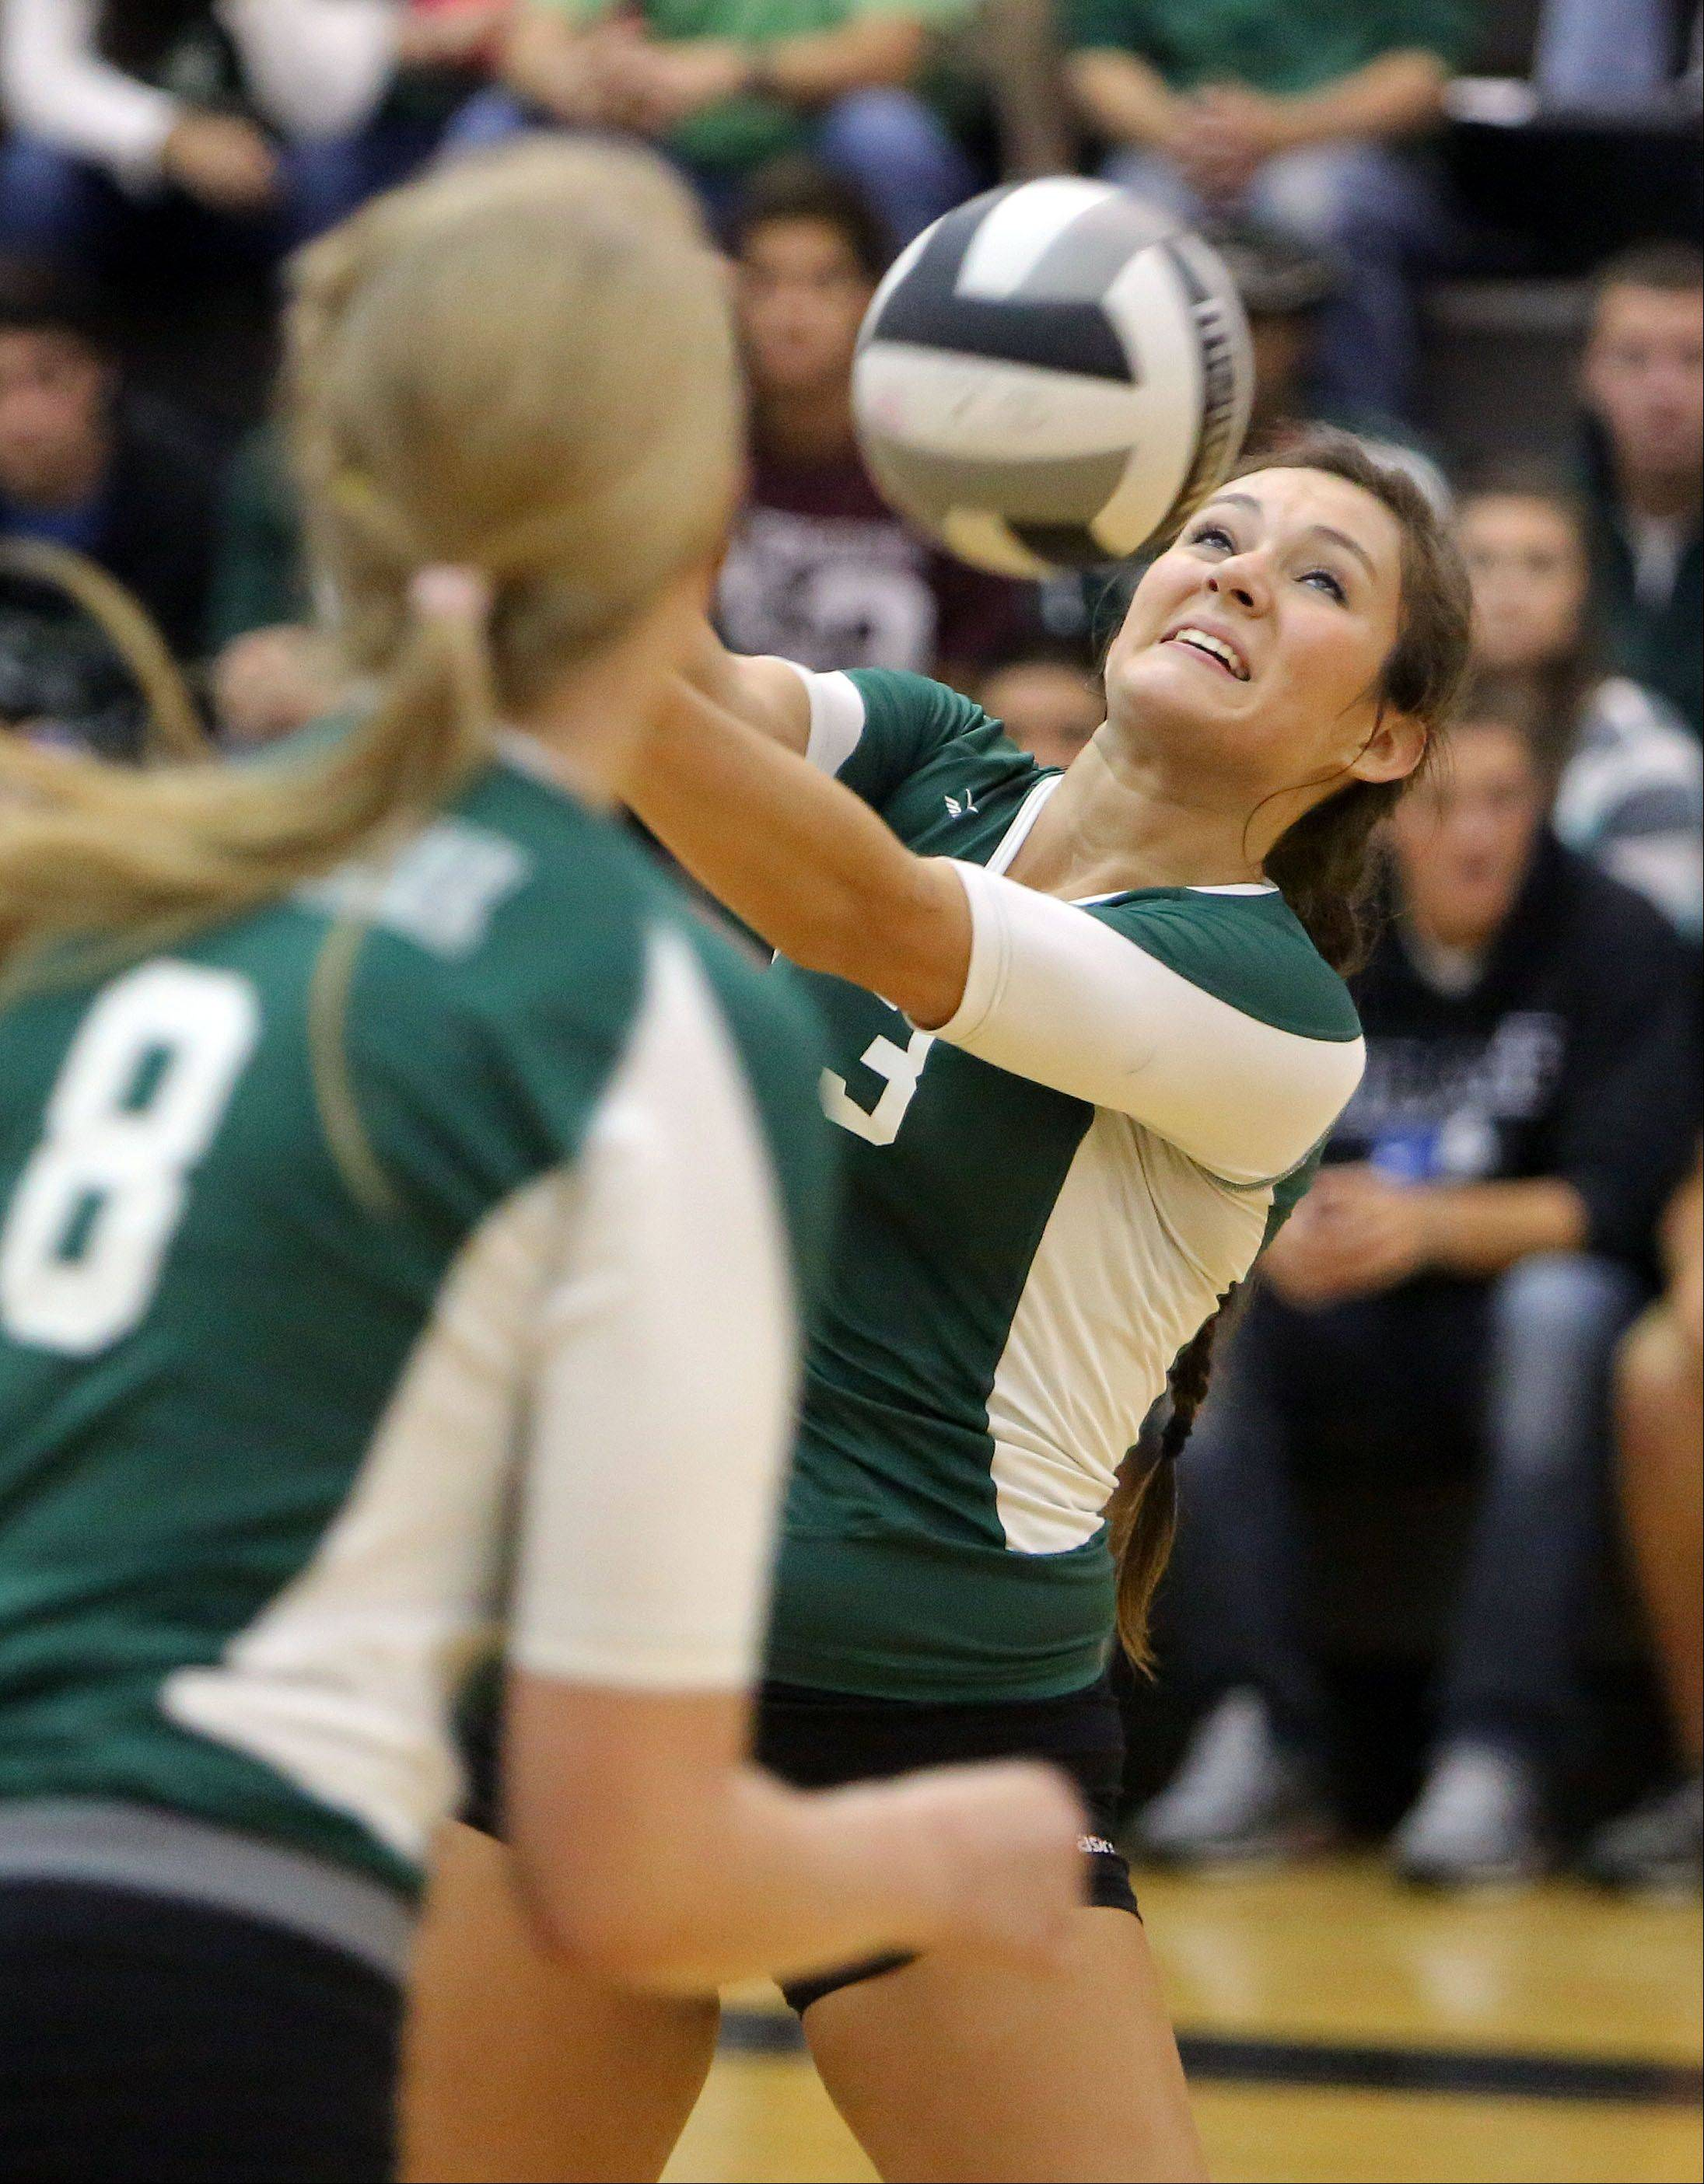 Grayslake Central's Gabi Casper returns a ball during Tuesday's volleyball game against Grayslake North.